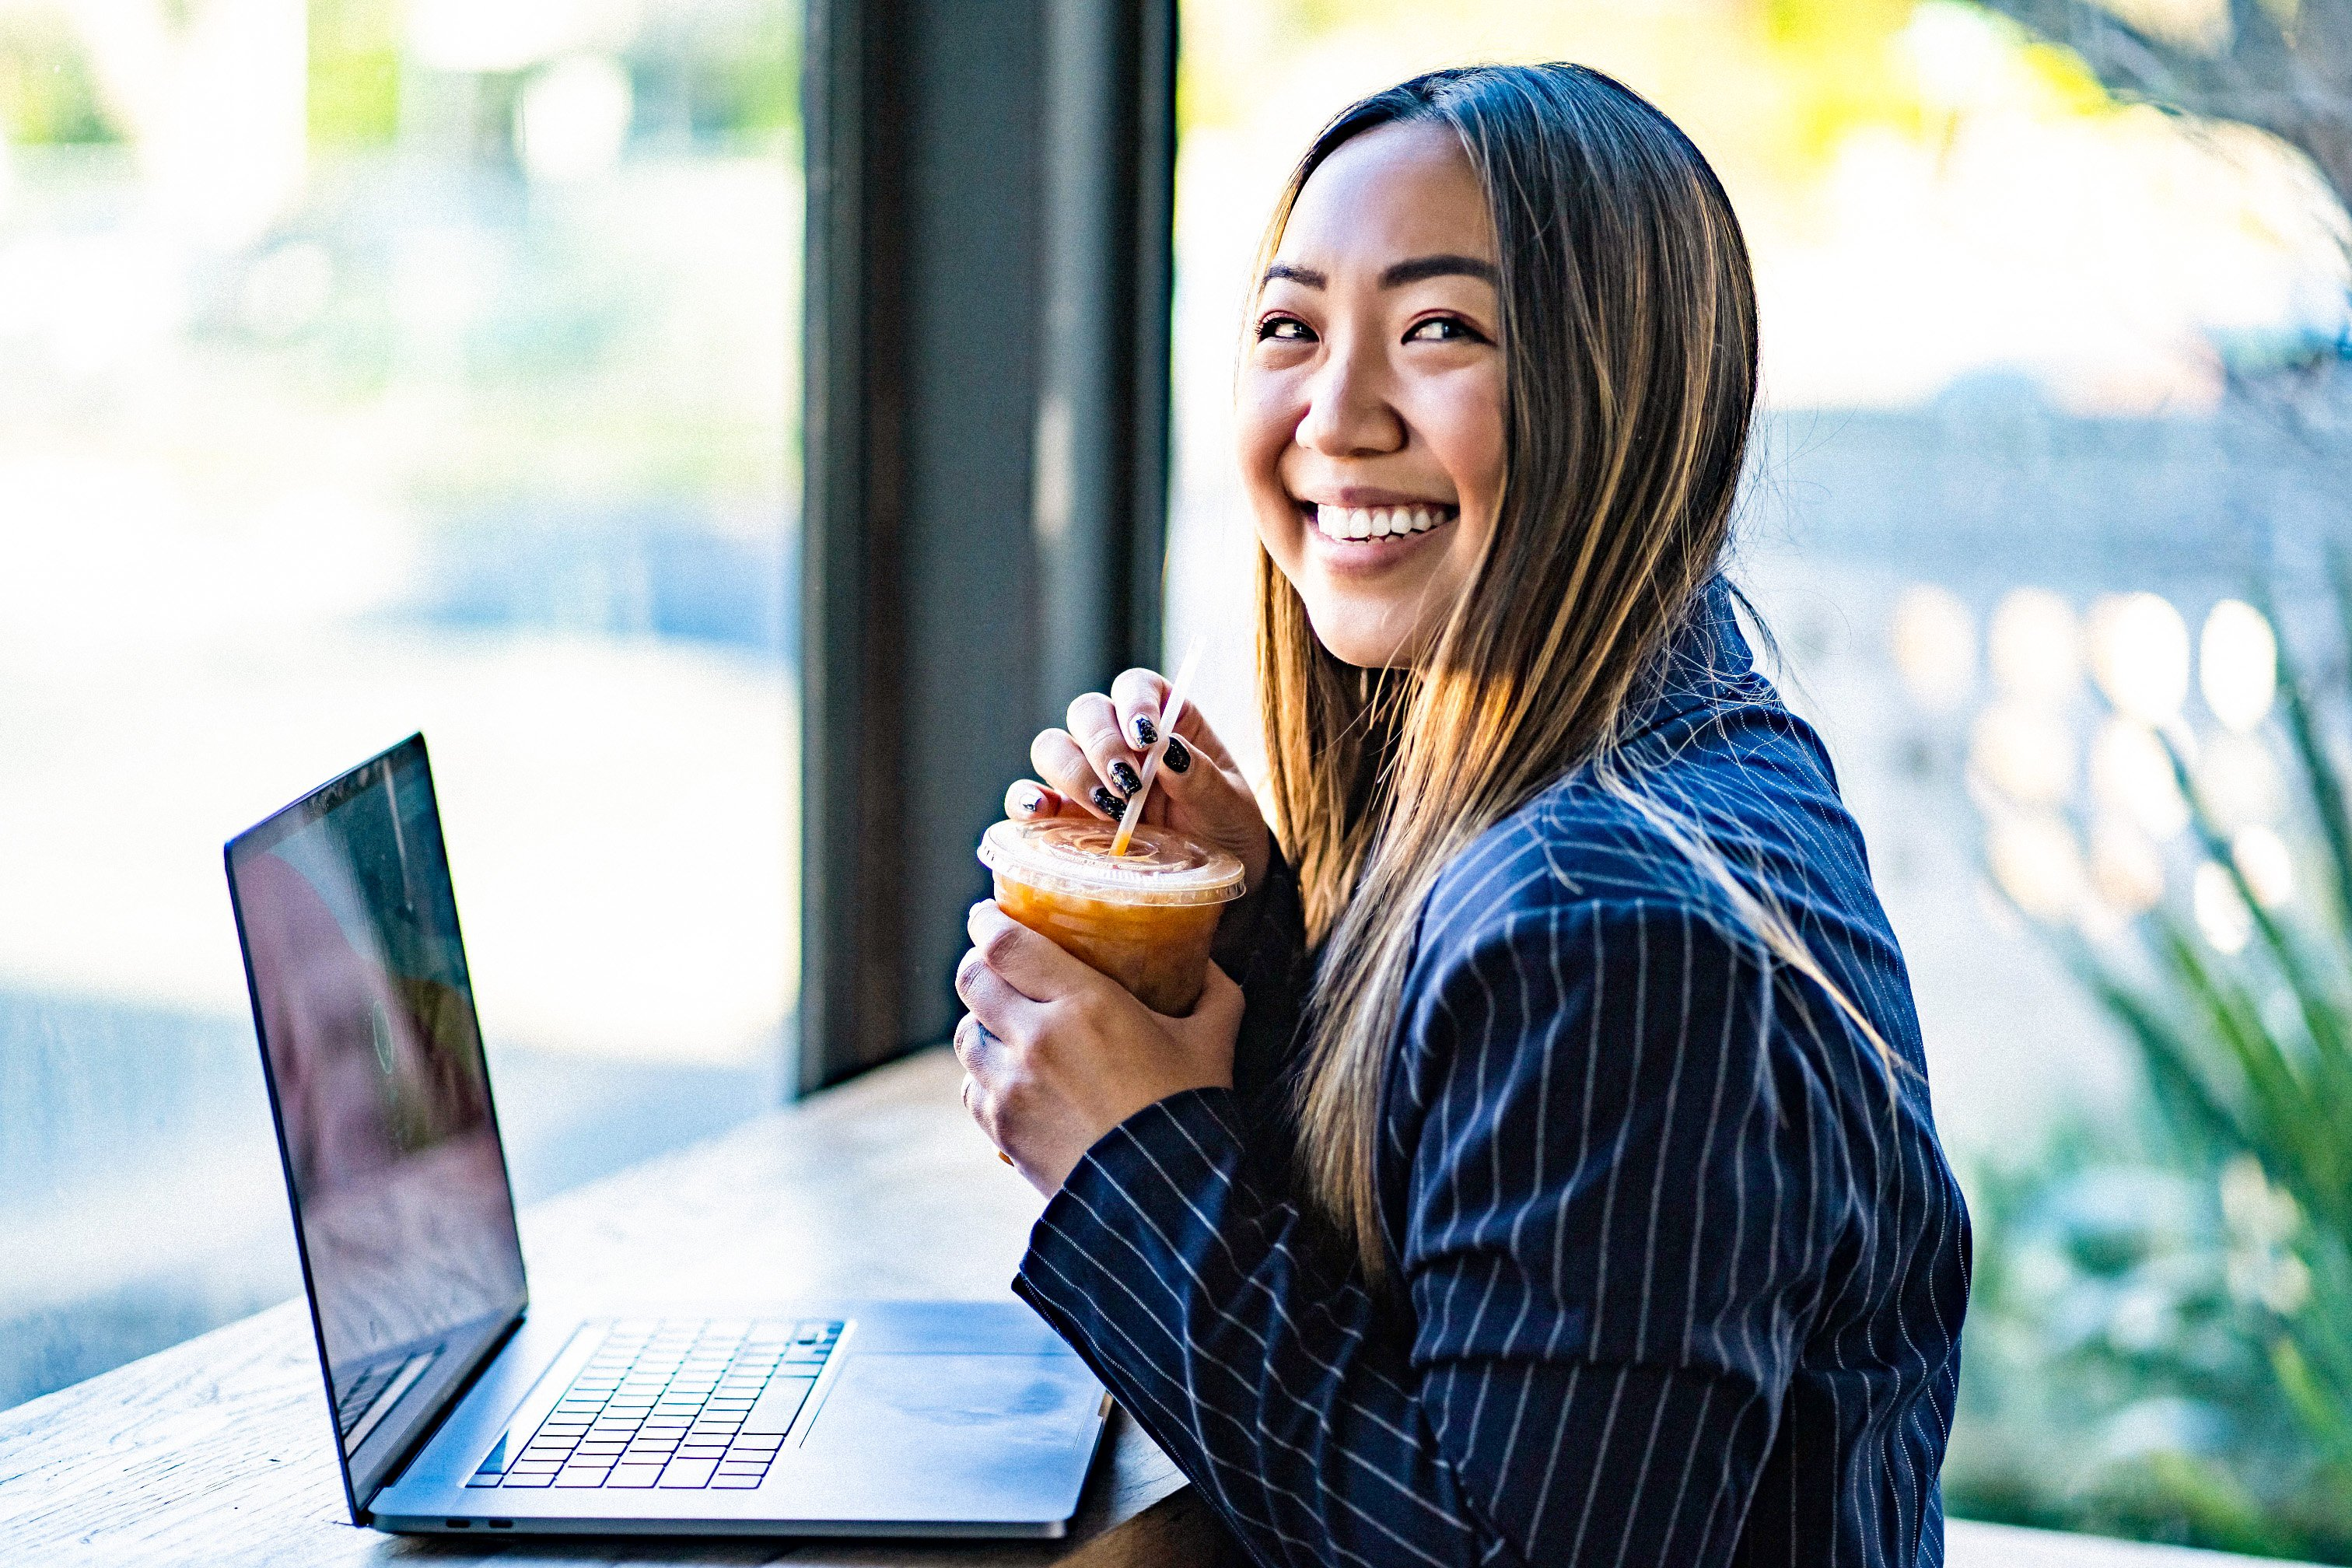 Jenn Hanft CEO and Founder of JOUHCO sipping iced coffee while working